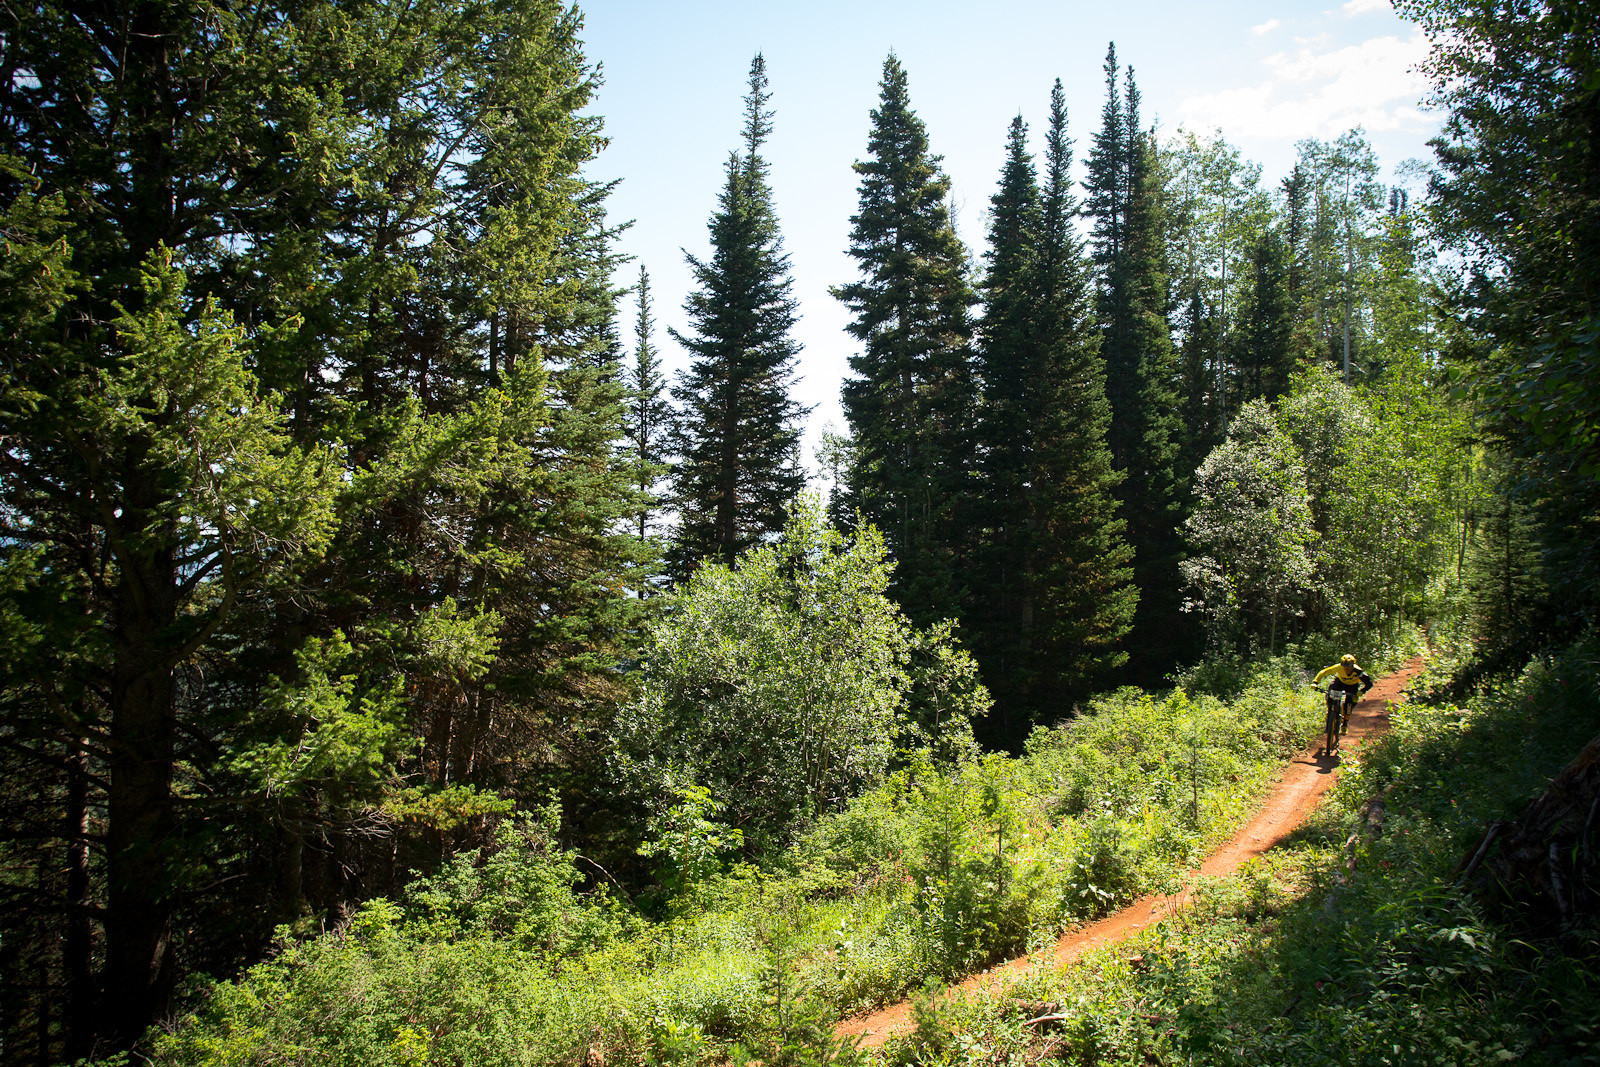 Nate Hills, Bell Enduro Cup at Canyons Resort - Race Report, Photos and Video: Bell Enduro Cup at Canyons Resort - Mountain Biking Pictures - Vital MTB